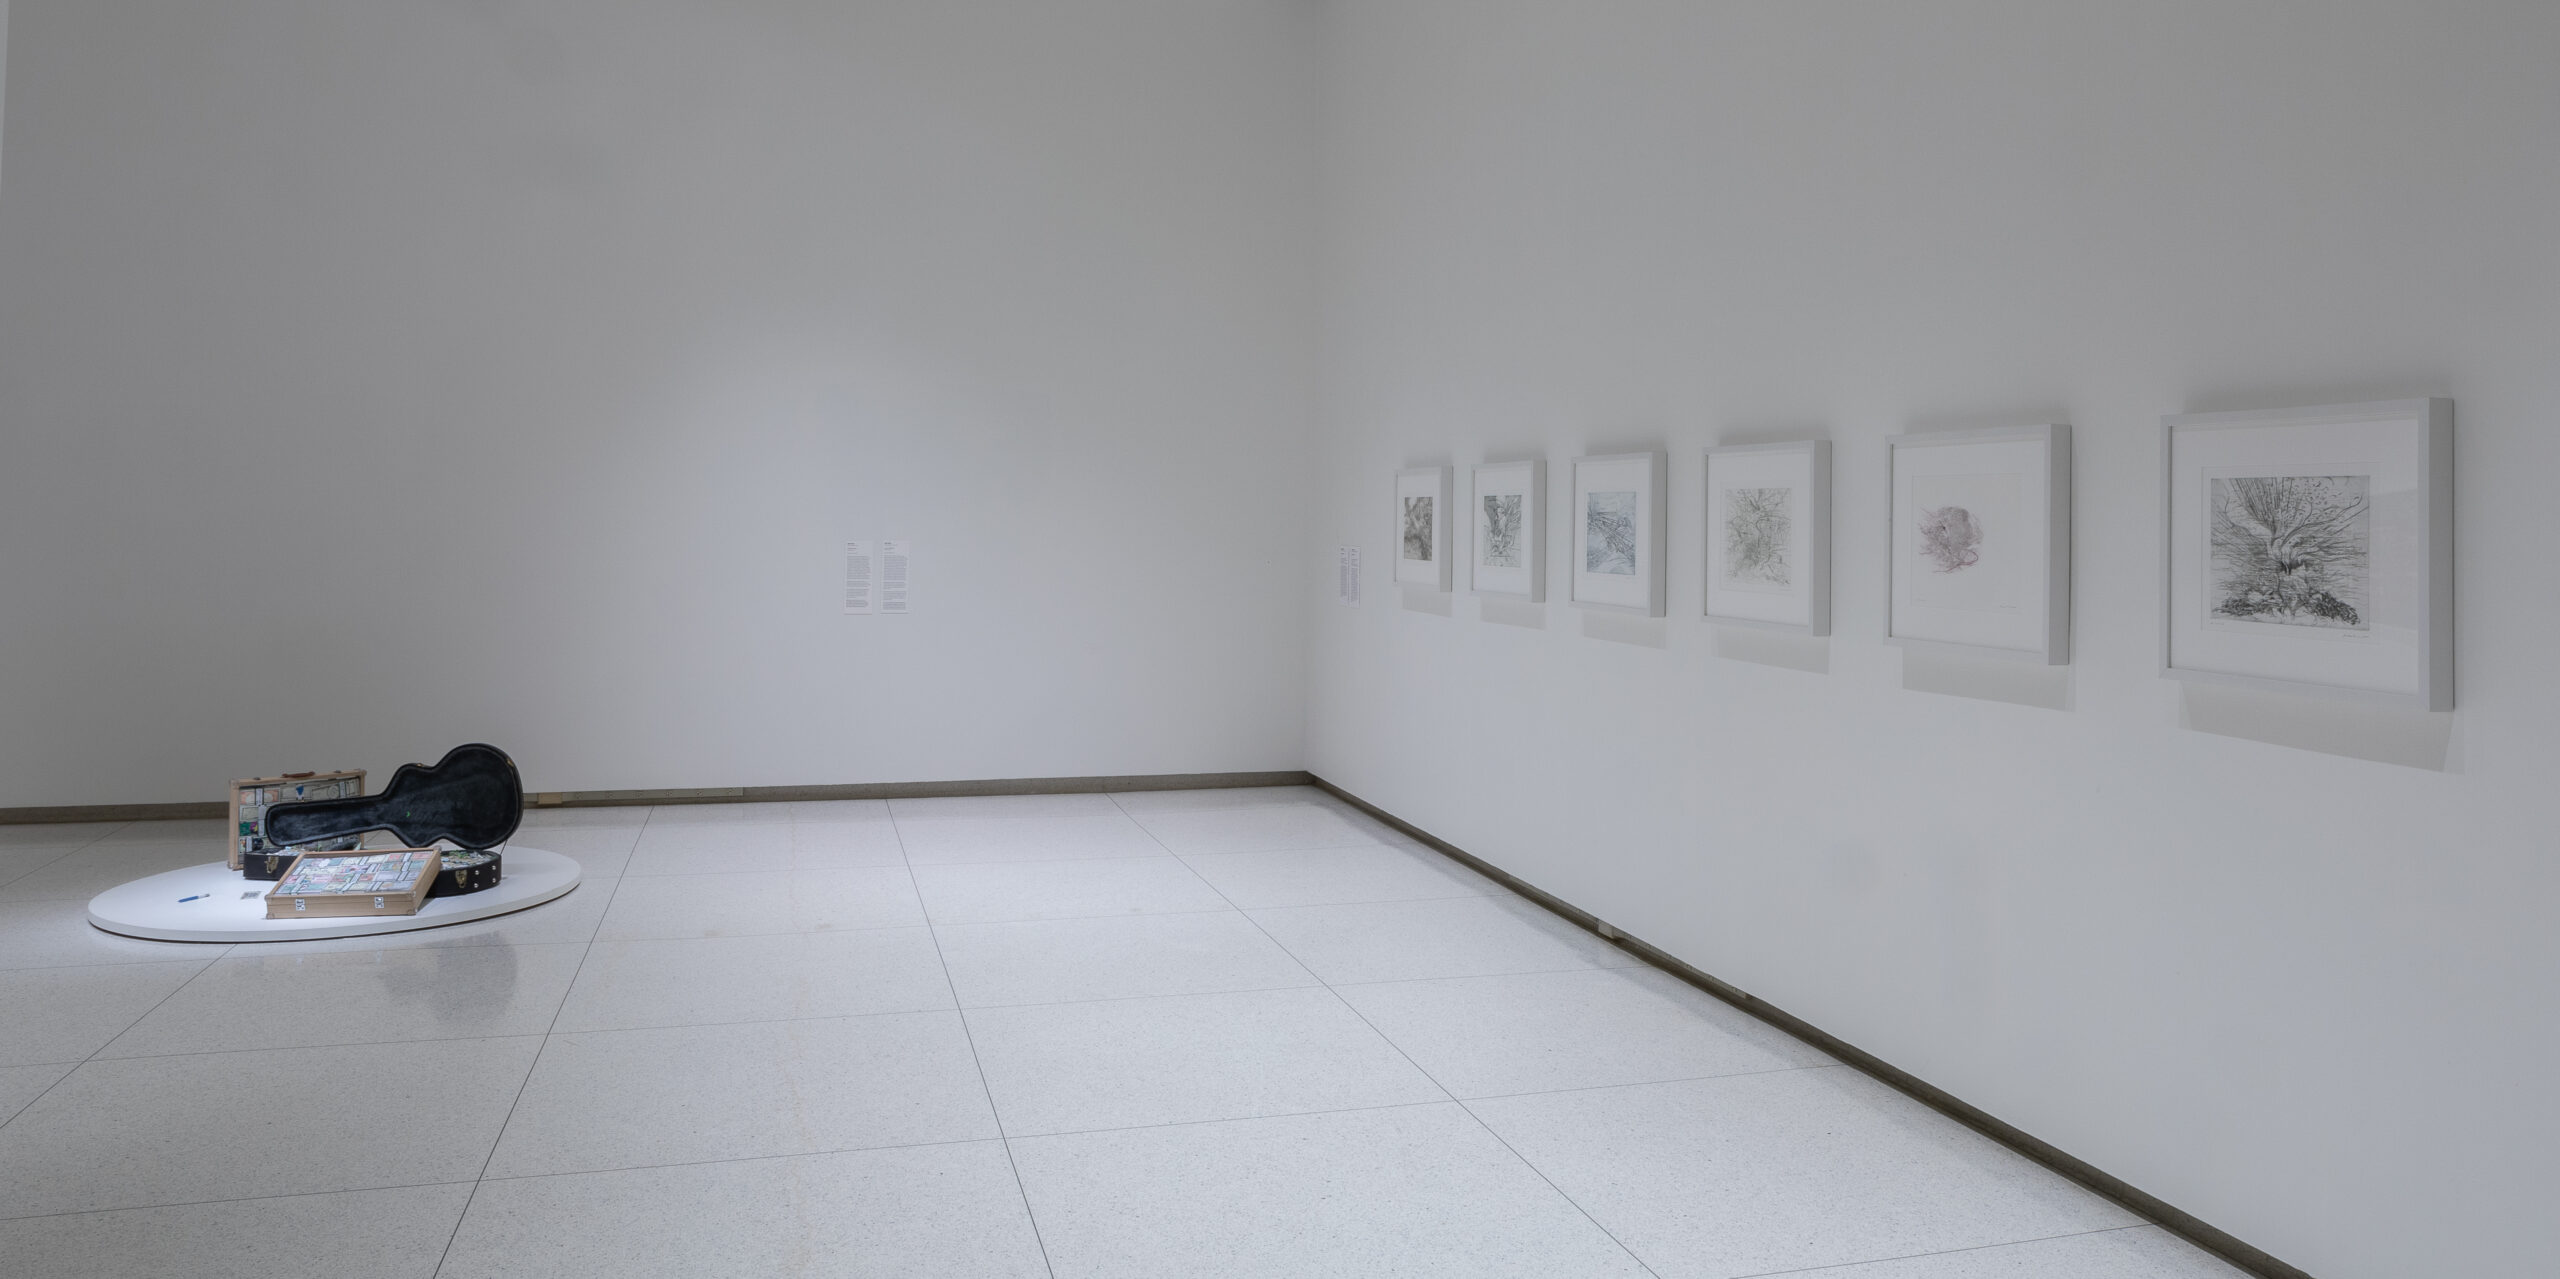 Gallery installation with six framed etchings and a guitar case on the ground.